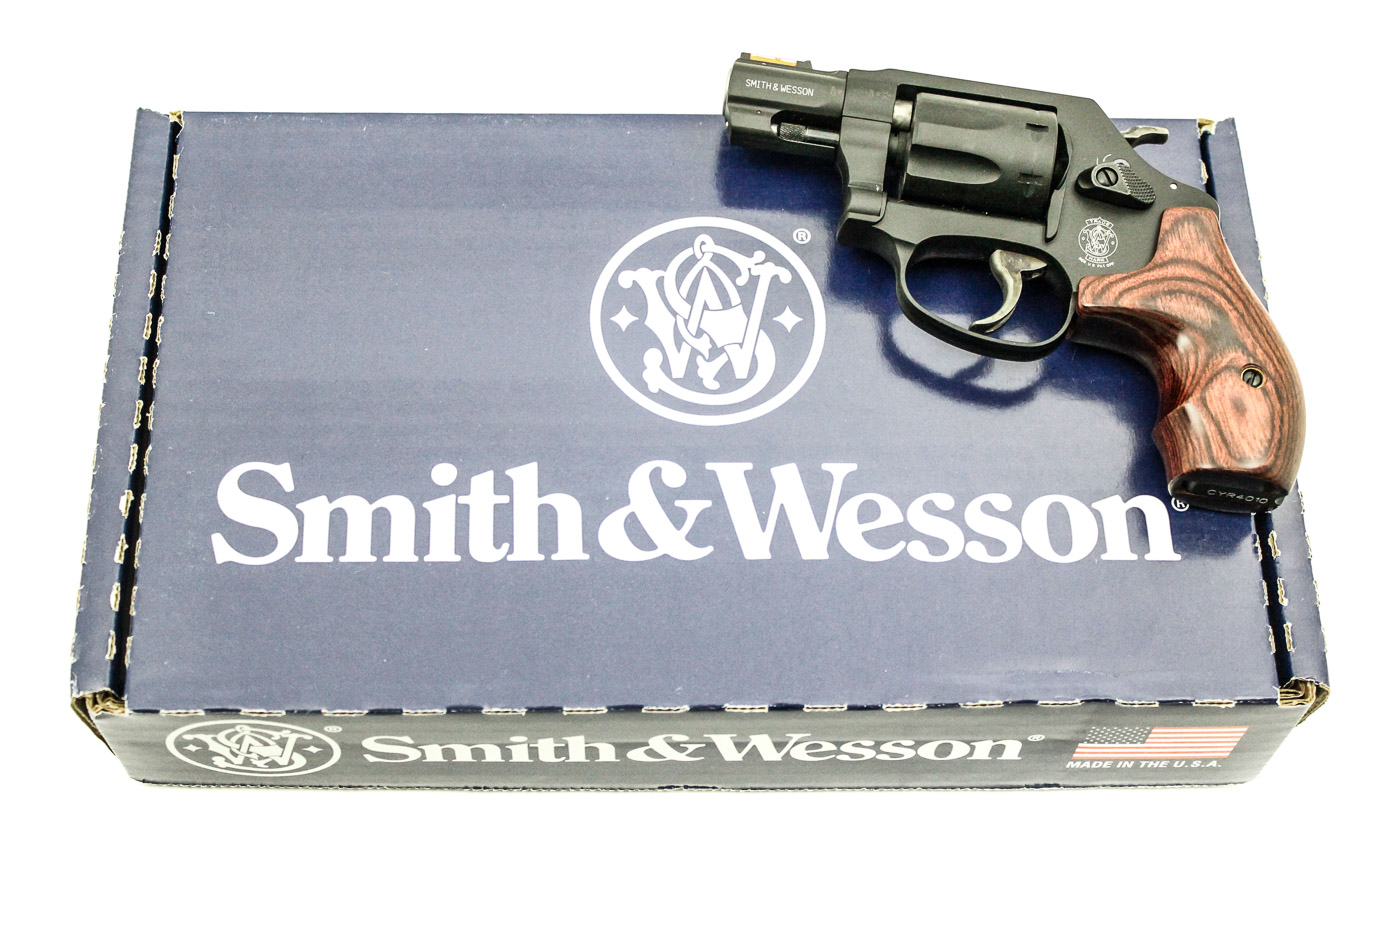 Smith & Wesson 351 PD, .22 Magnum - Image 3